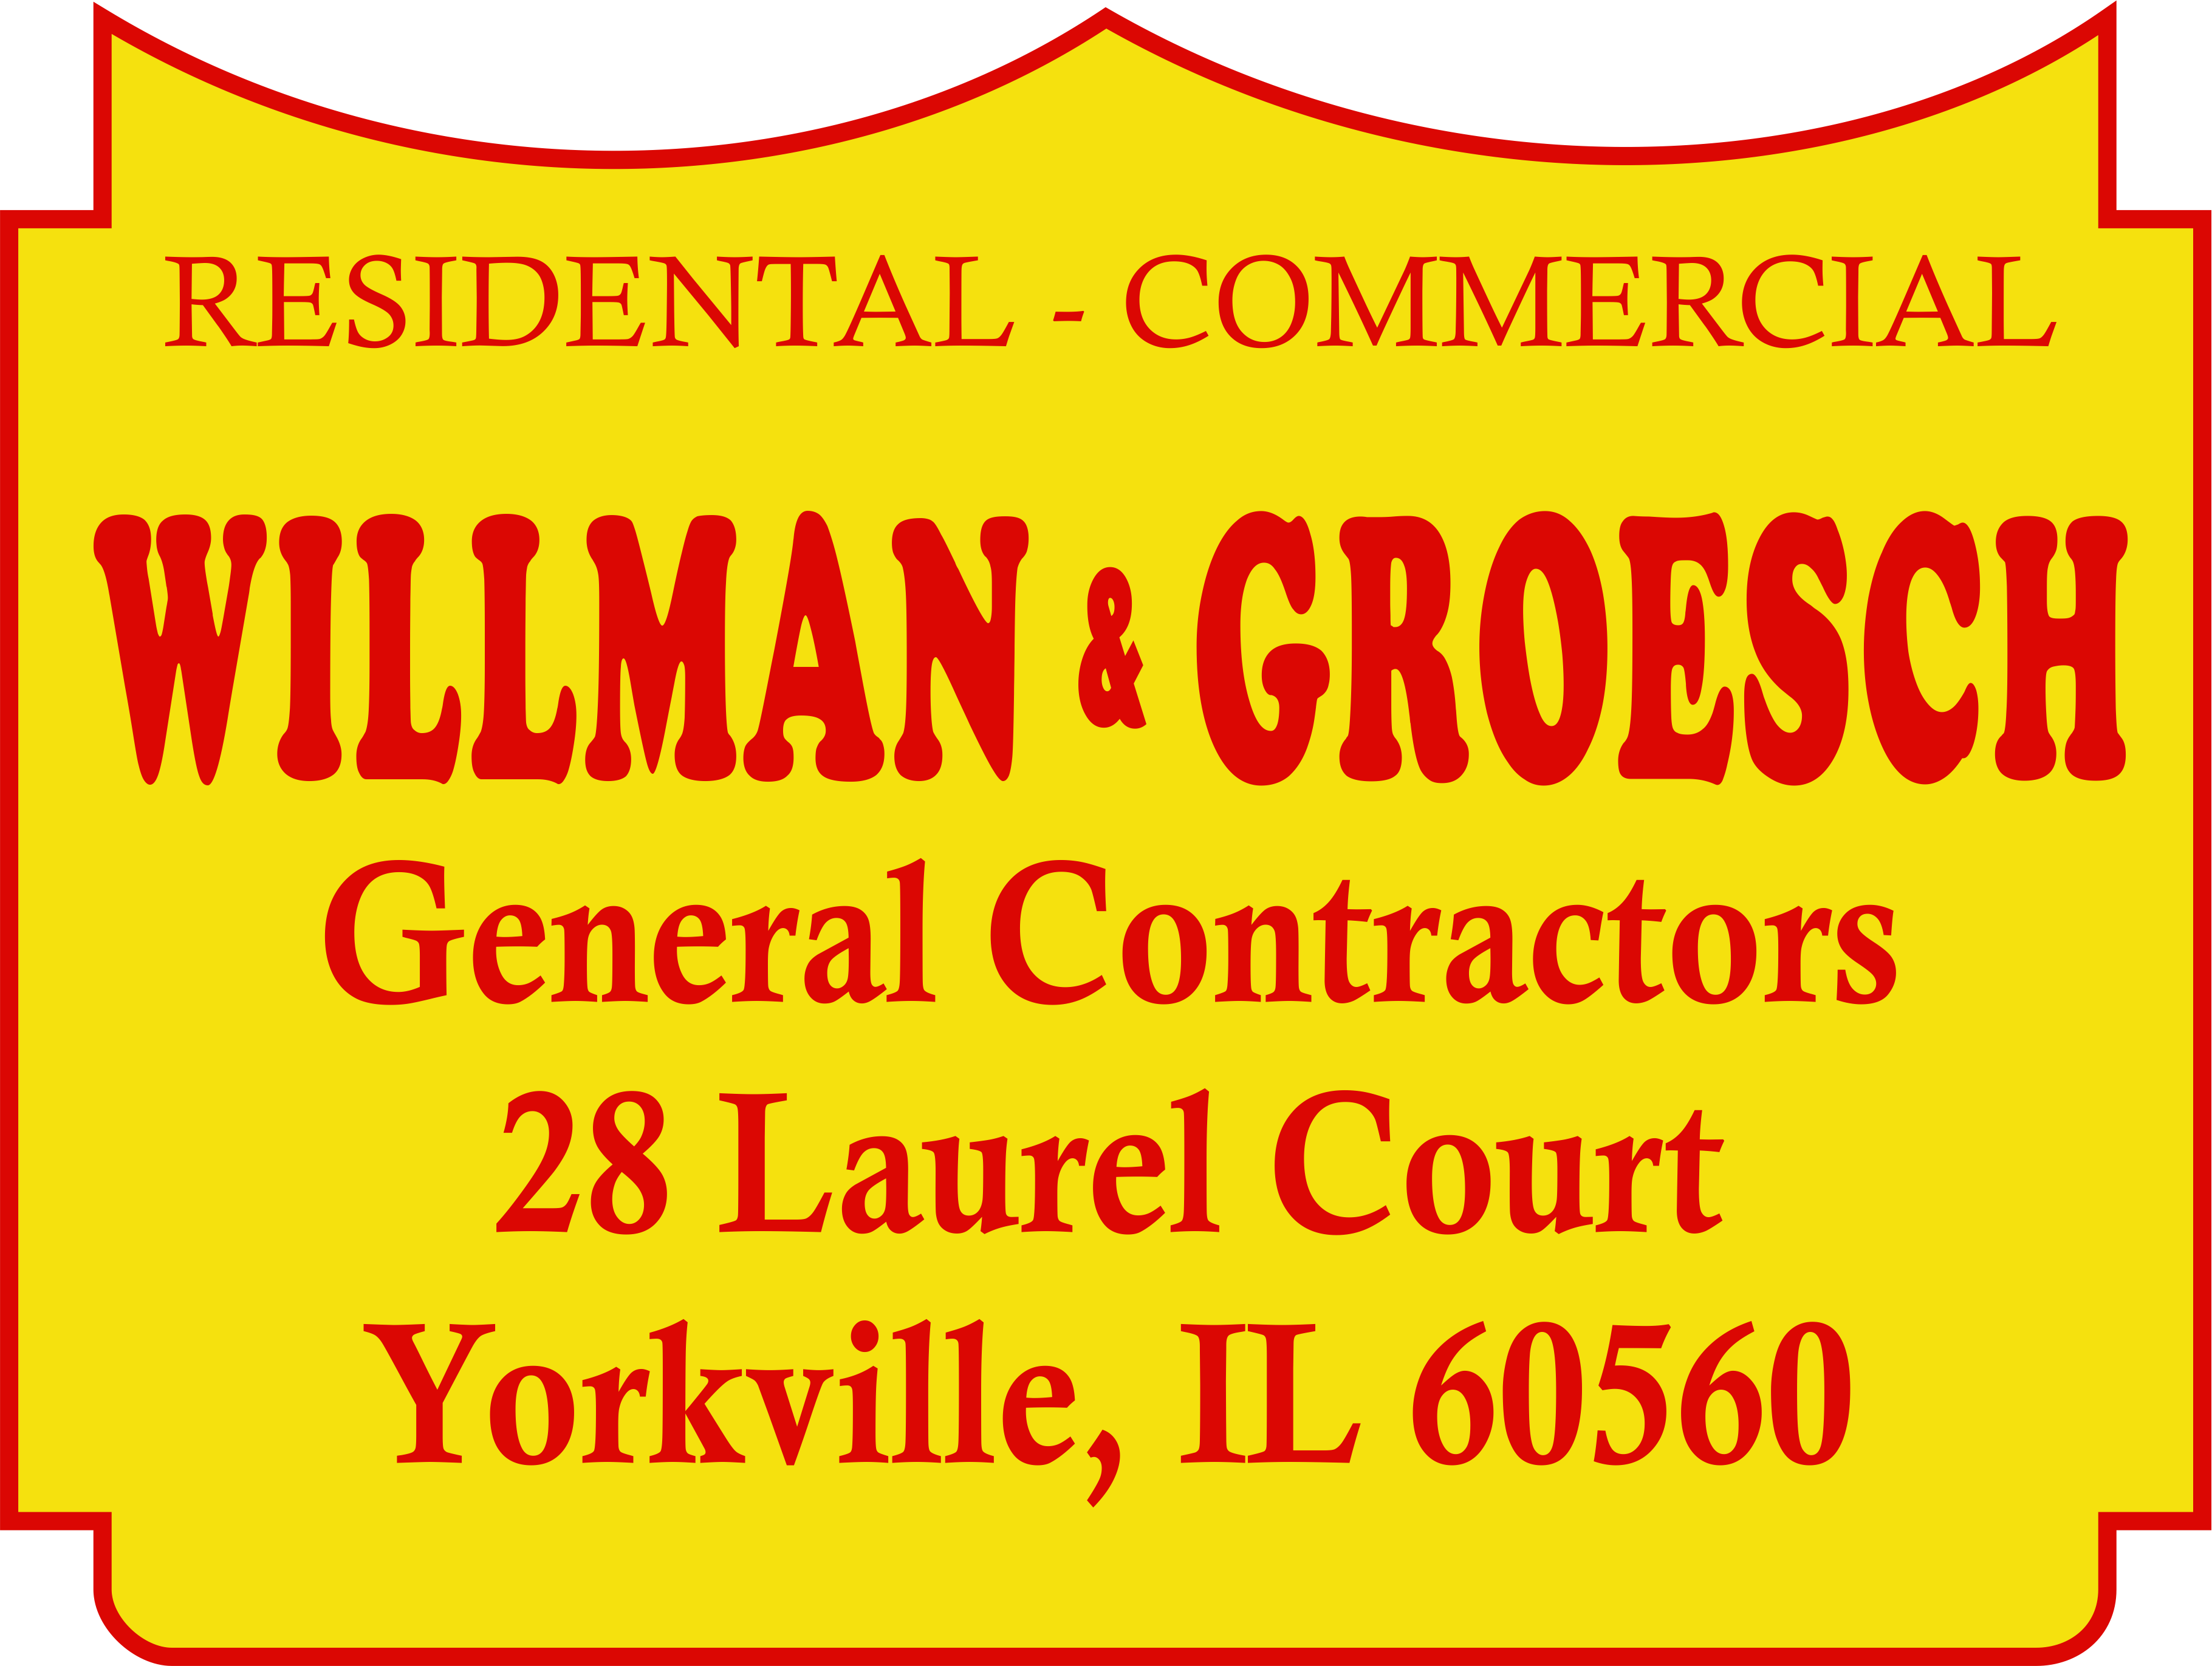 Willman & Groesch General Contractors Logo